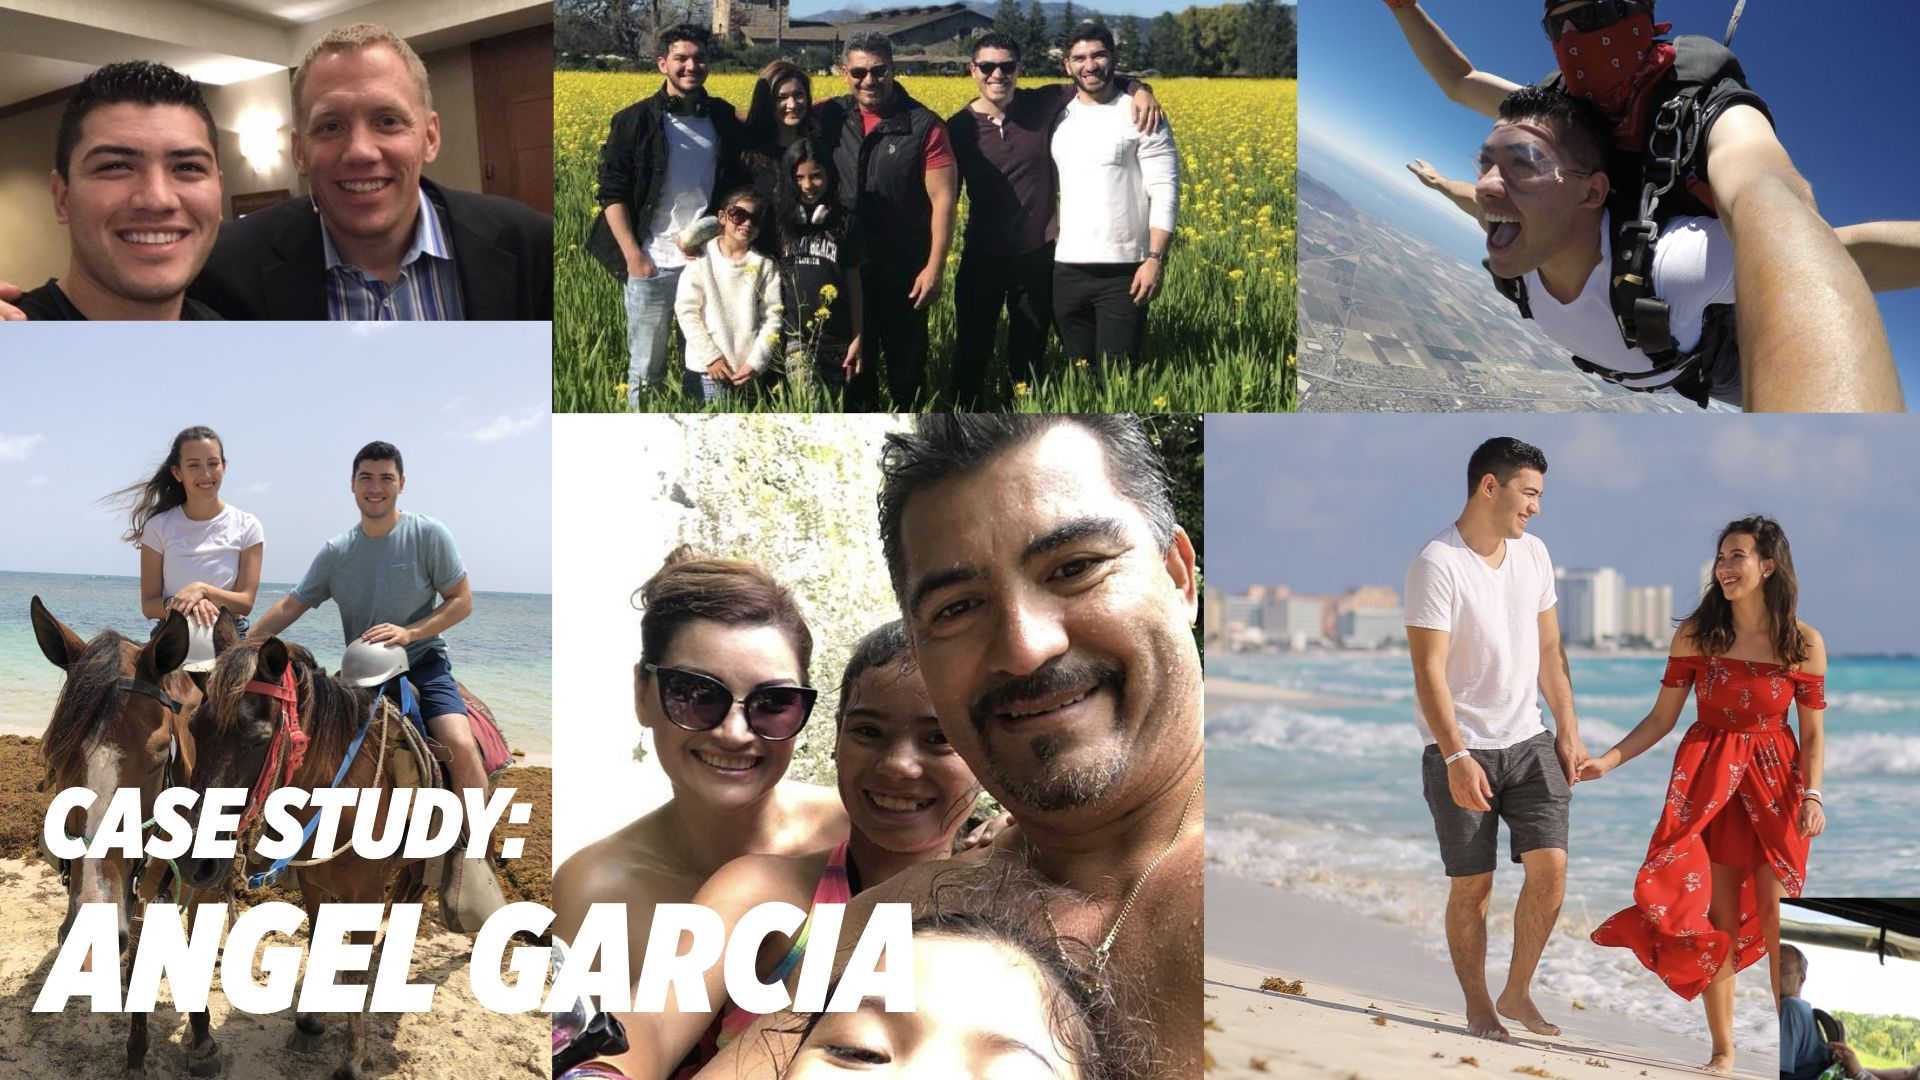 How Angel Garcia Went from $23M to $70M Volume in 3 Years - at 26 Years Old!